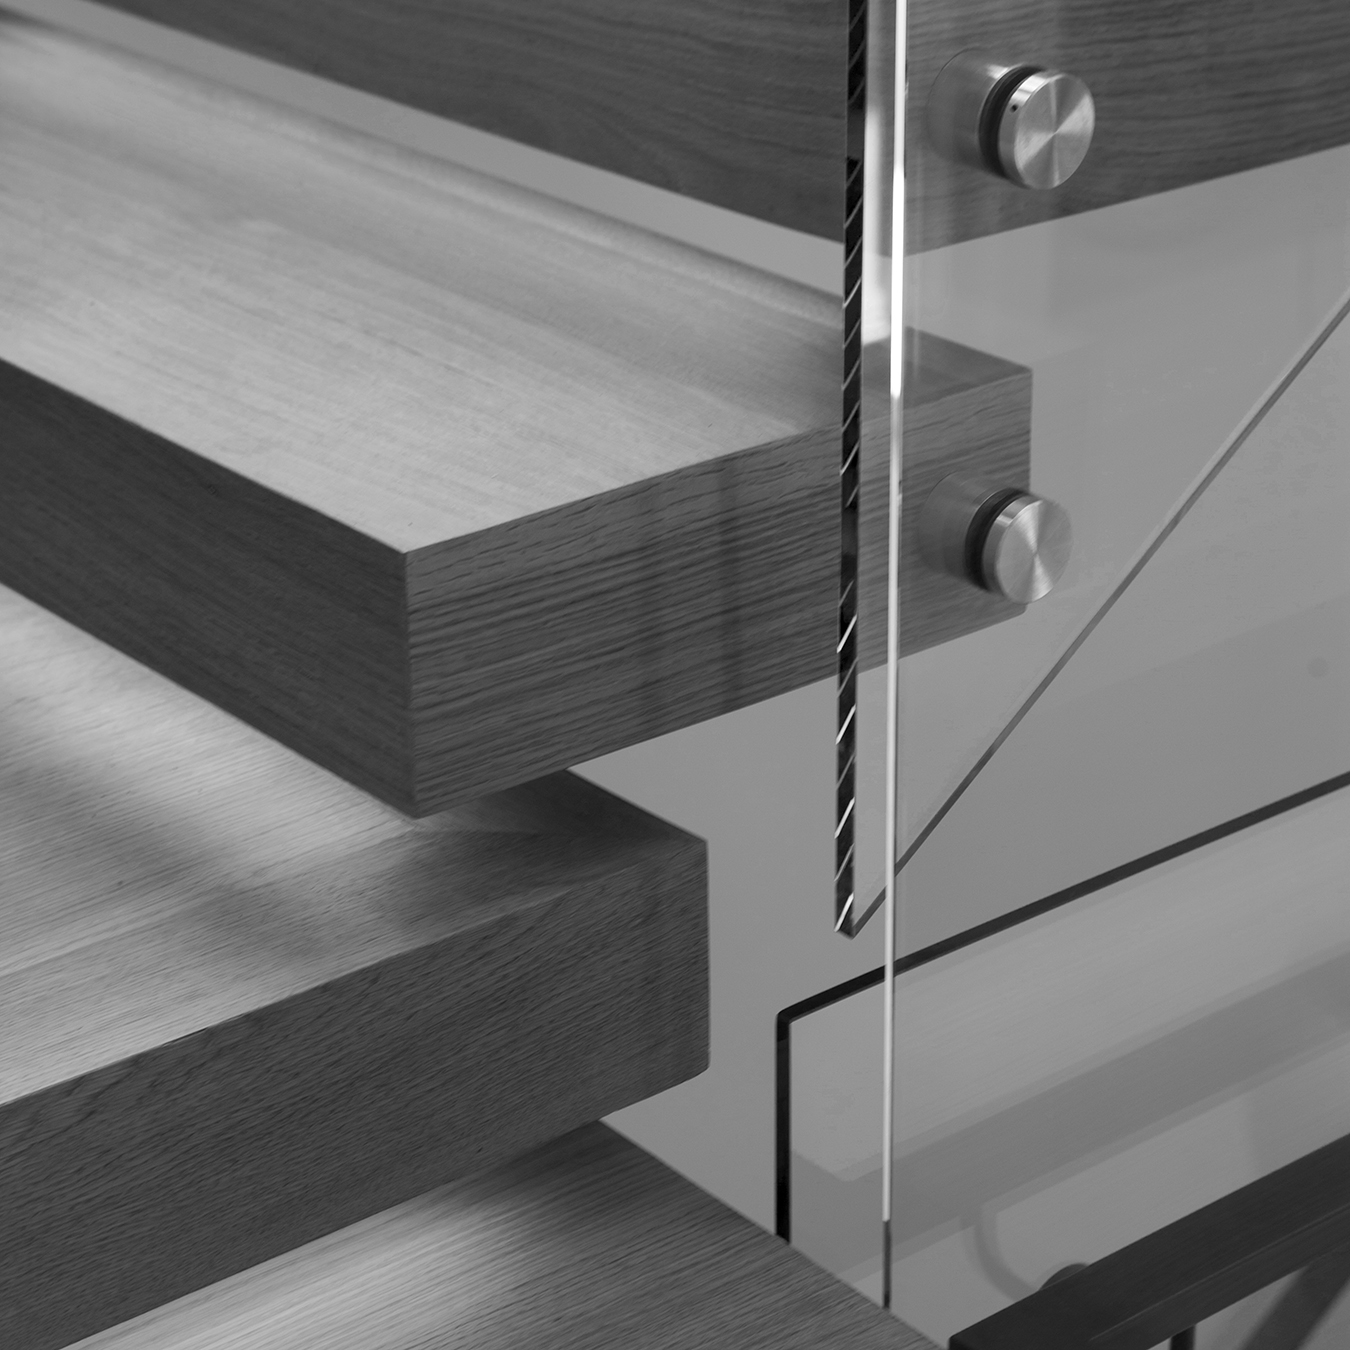 Residence 2750 Cantilevered Stair Detail Black and White